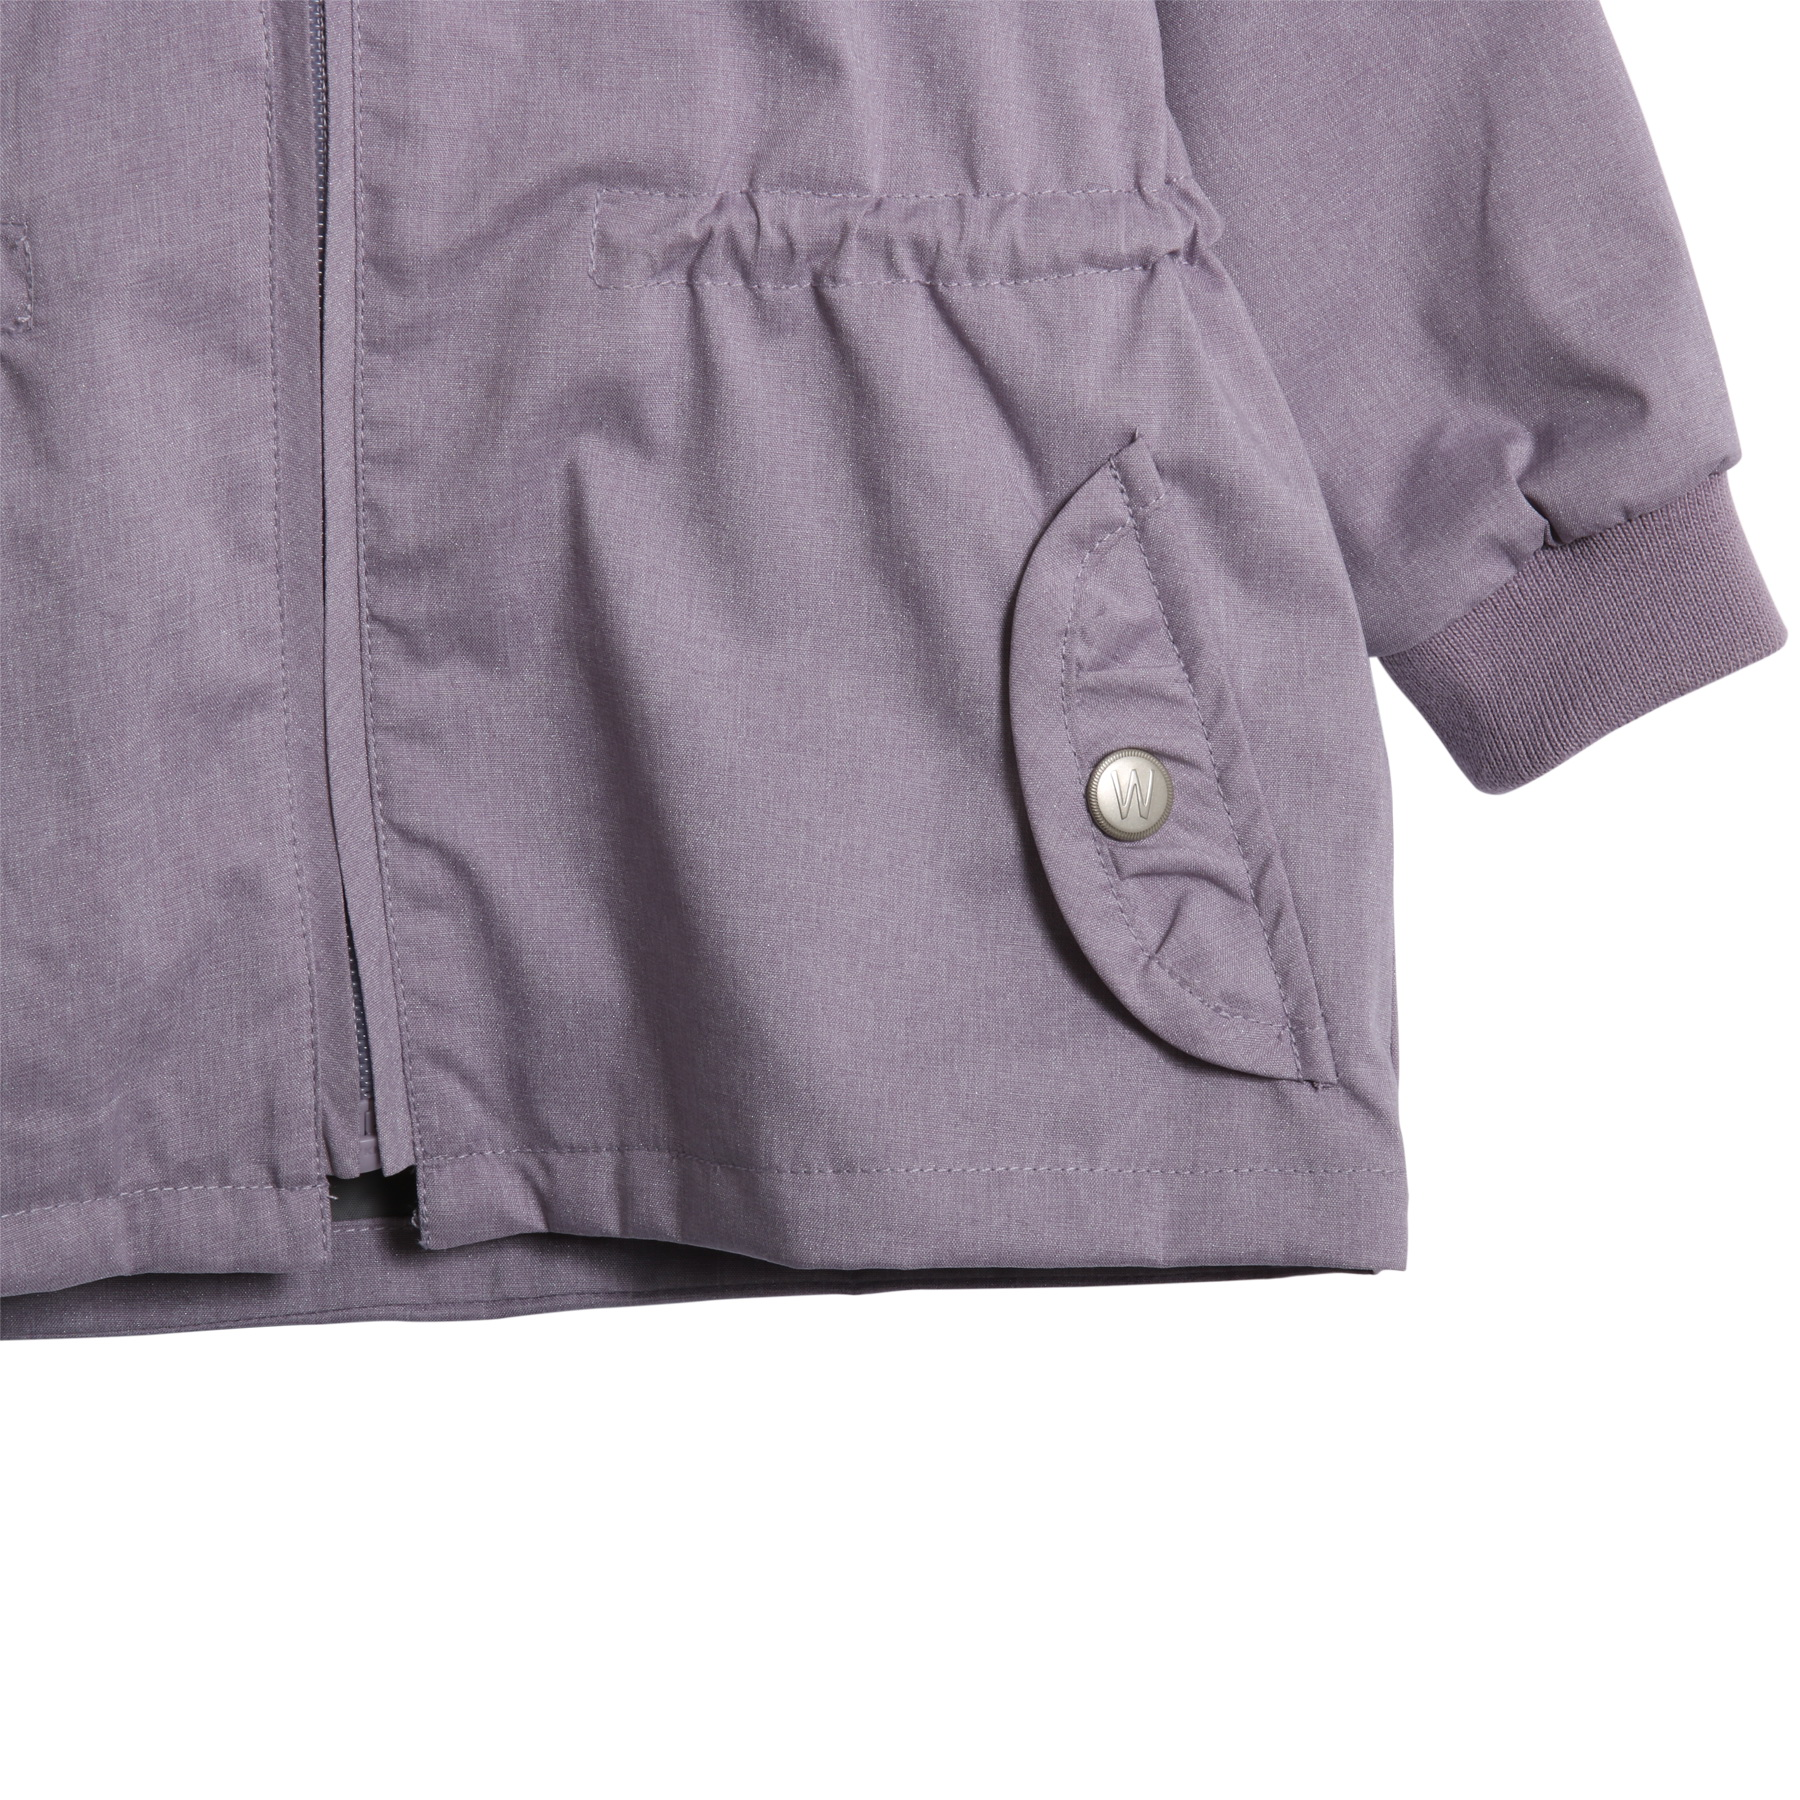 6d3111b4 Wheat Darlene windbreaker jakke til barn, lavendel - DressMyKid AS